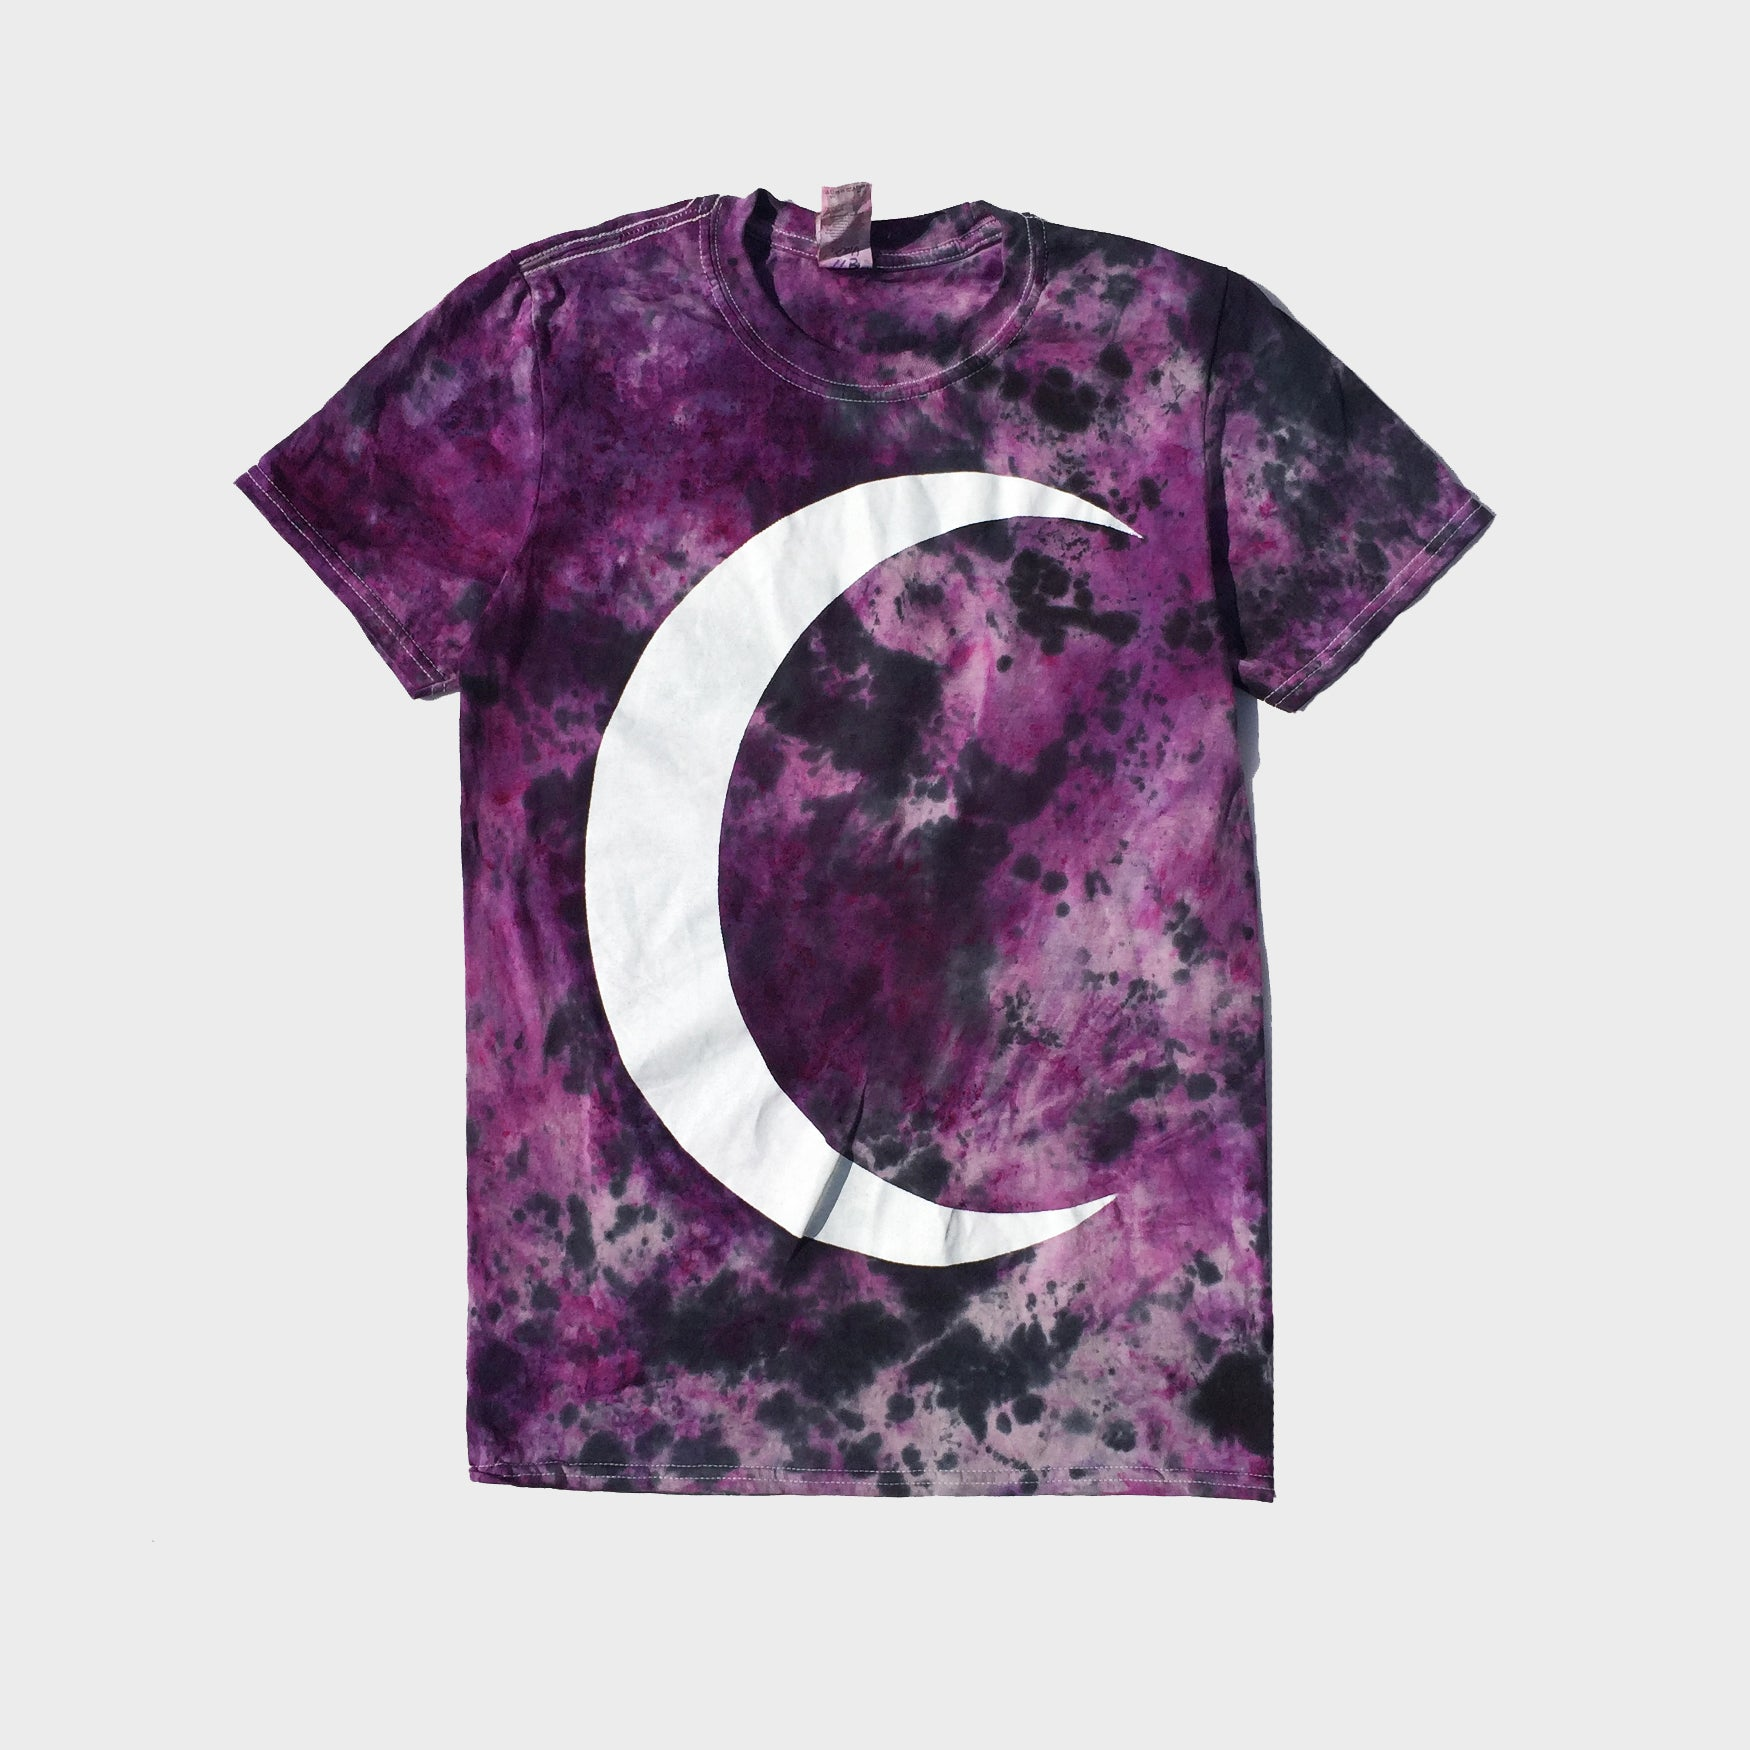 Crescent Moon Purple/Black Tie Dye T-shirt